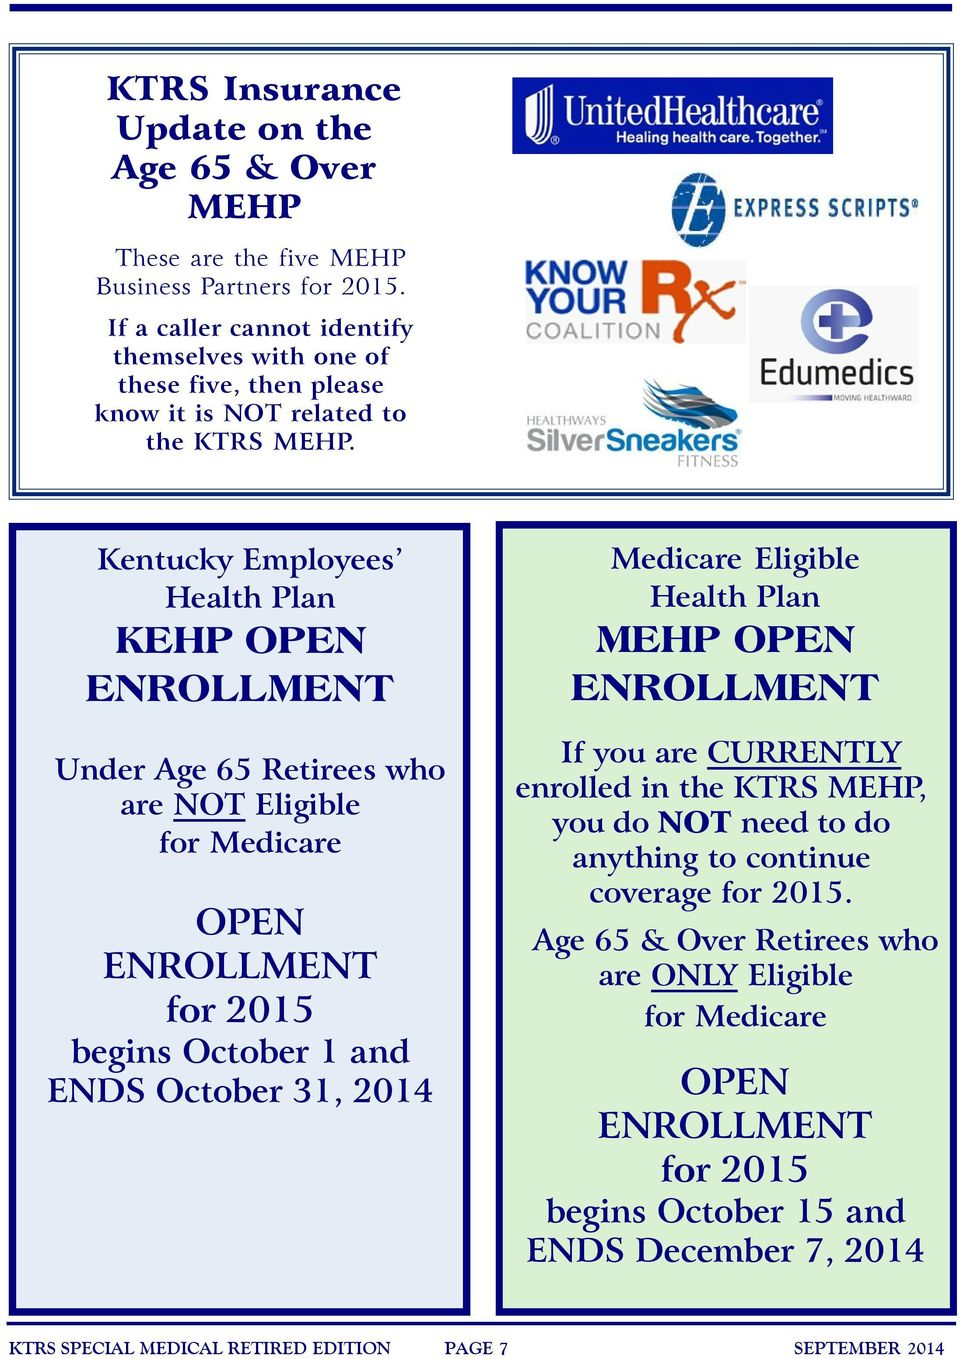 Kentucky Employees Health Plan KEHP OPEN Under Age 65 Retirees who are NOT Eligible for Medicare OPEN for 2015 begins October 1 and ENDS October 31, 2014 Medicare Eligible